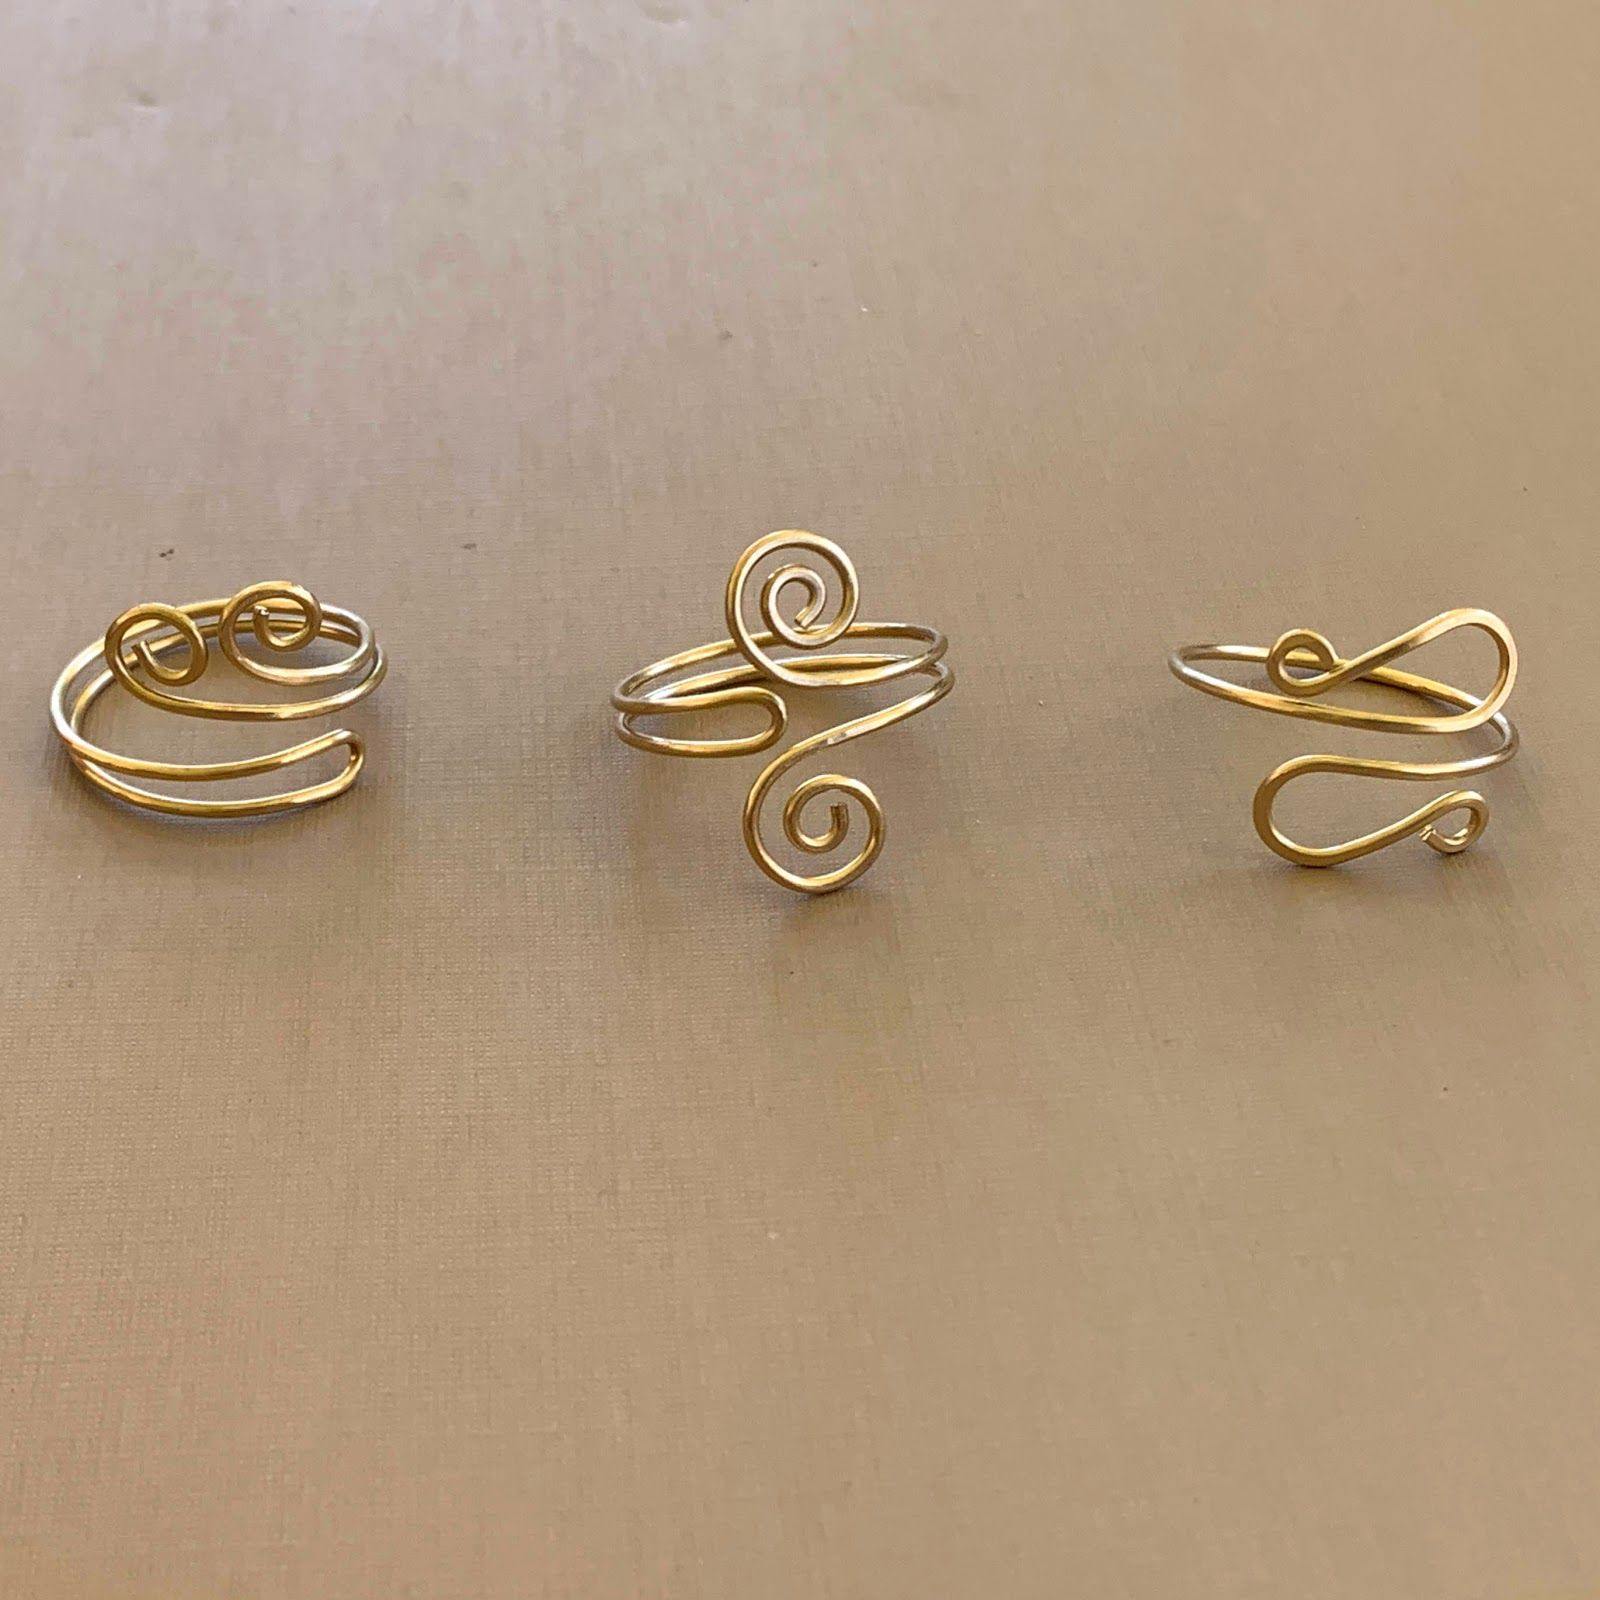 Single Curl Wave Wire Ring Instructions